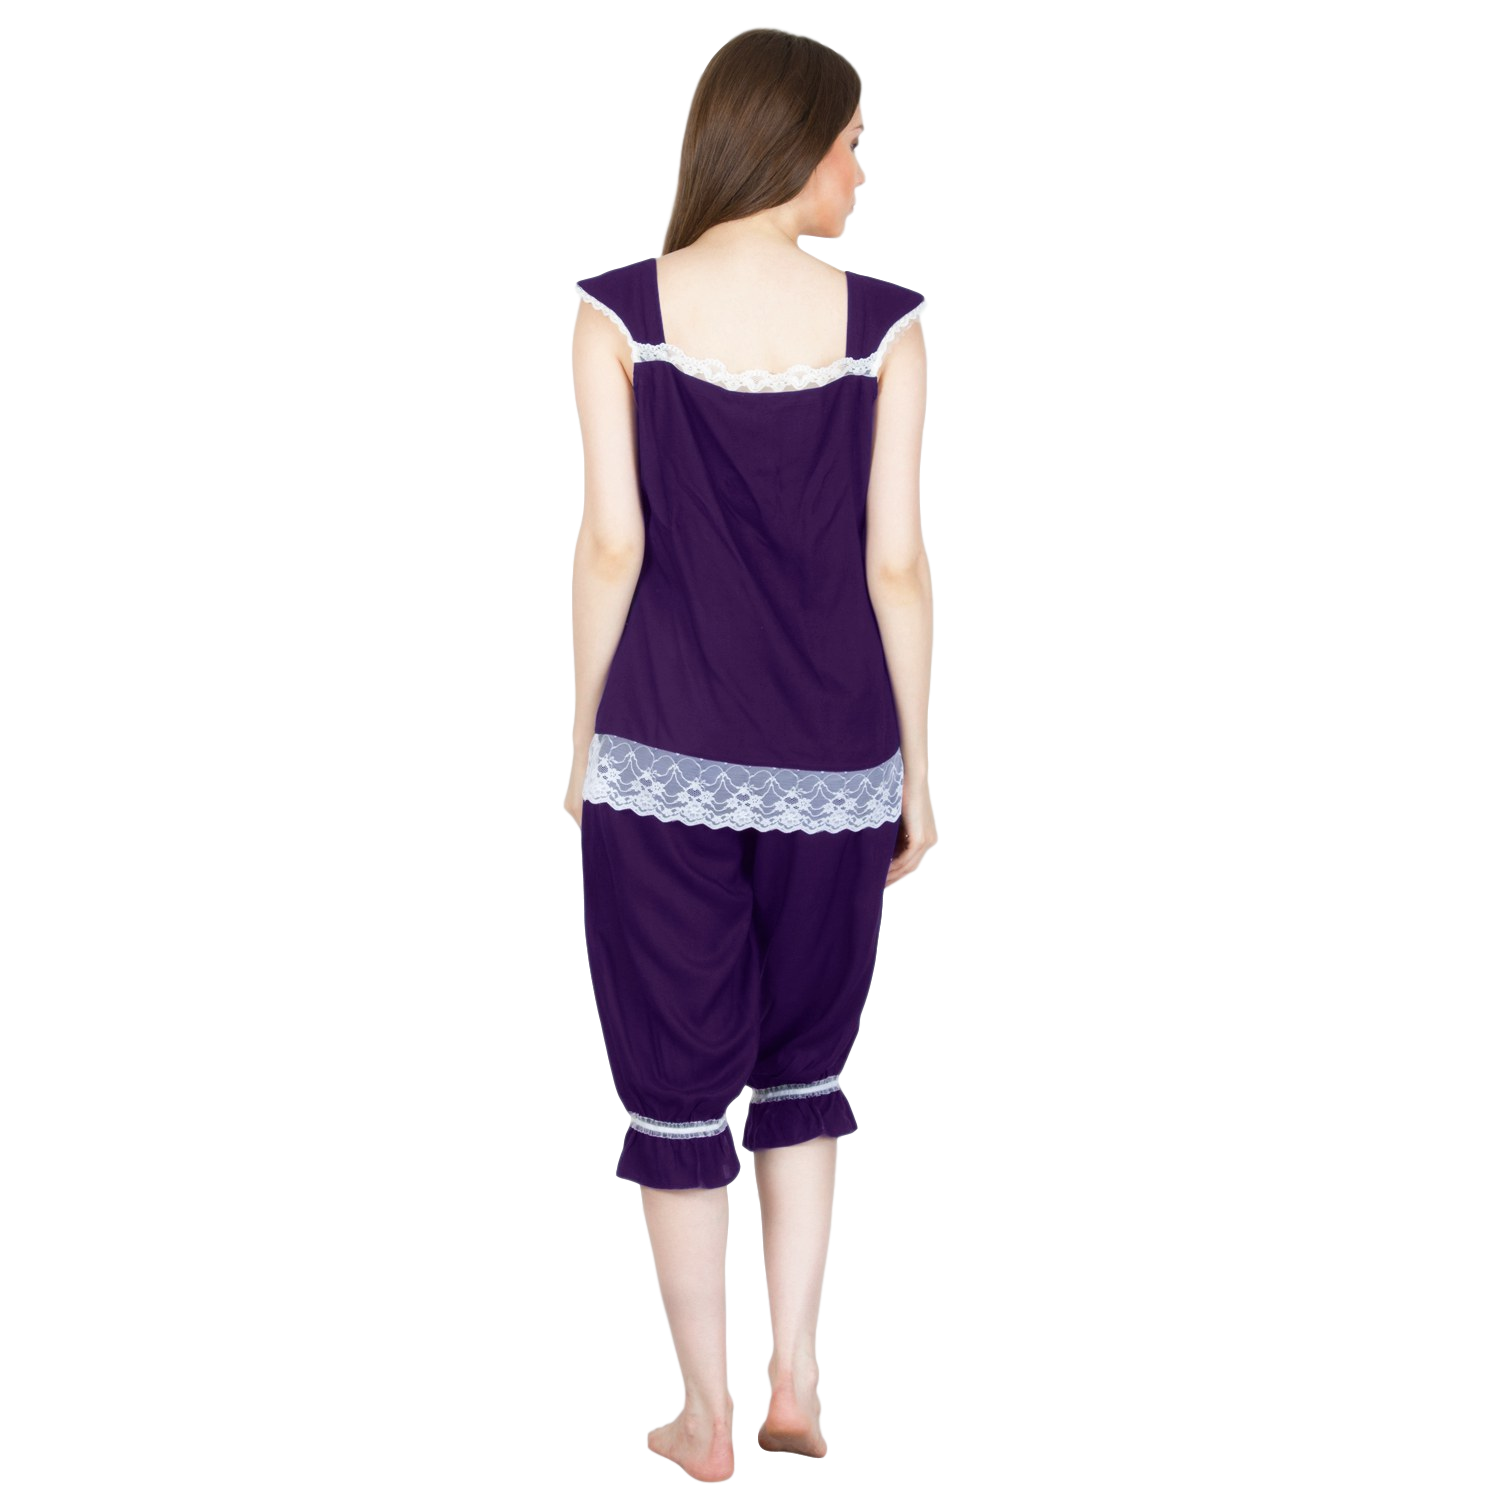 Embellished Night Top and Capri Set in Purple